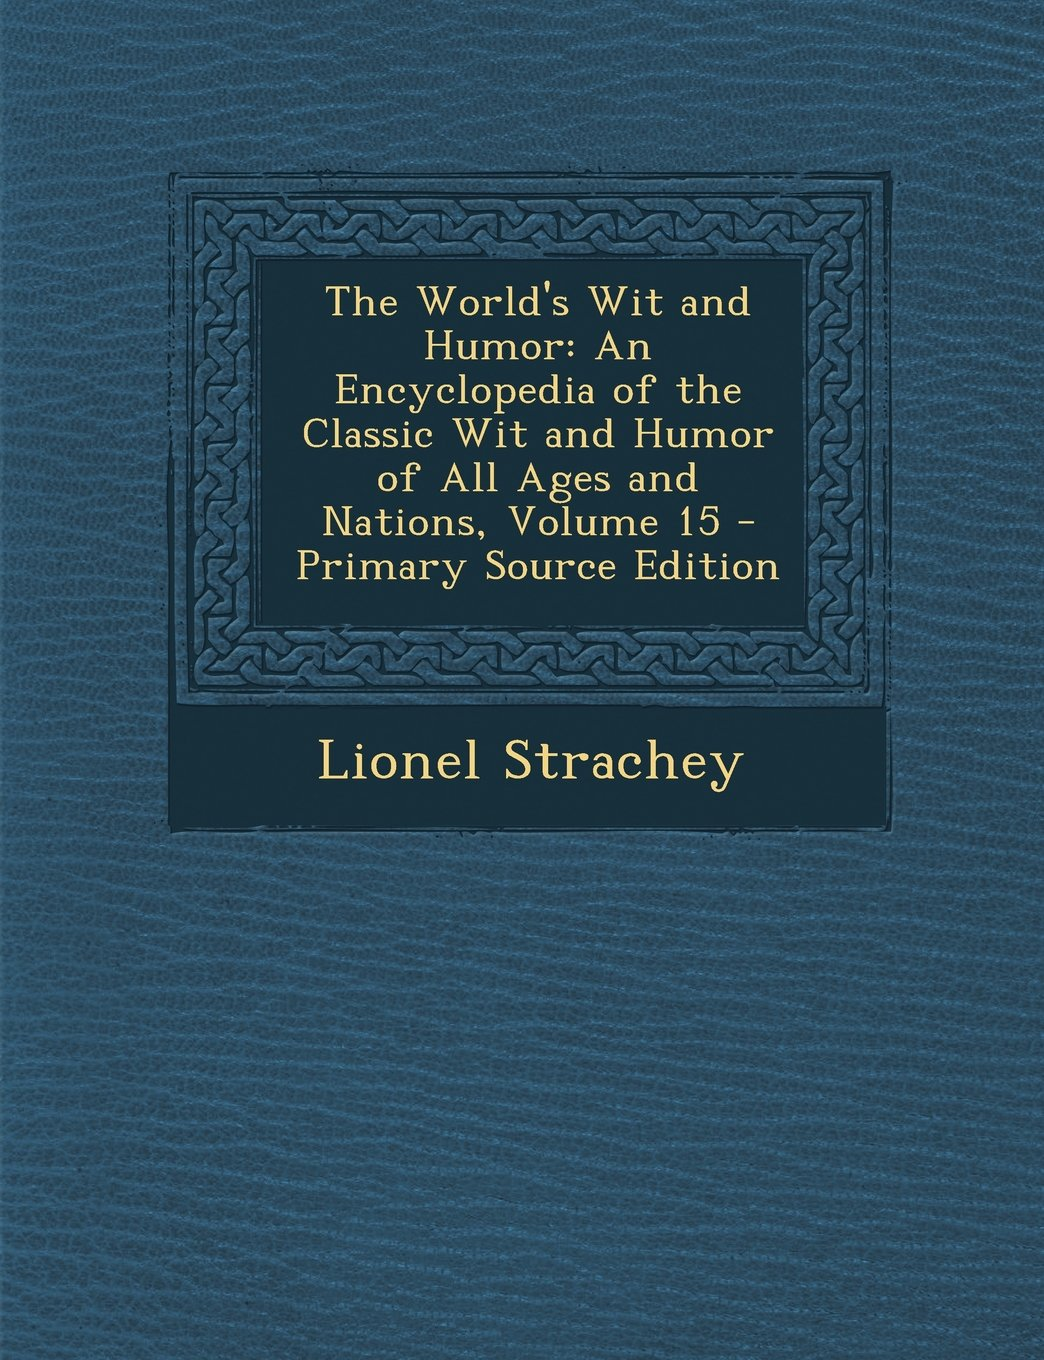 Read Online The World's Wit and Humor: An Encyclopedia of the Classic Wit and Humor of All Ages and Nations, Volume 15 - Primary Source Edition (Multilingual Edition) PDF